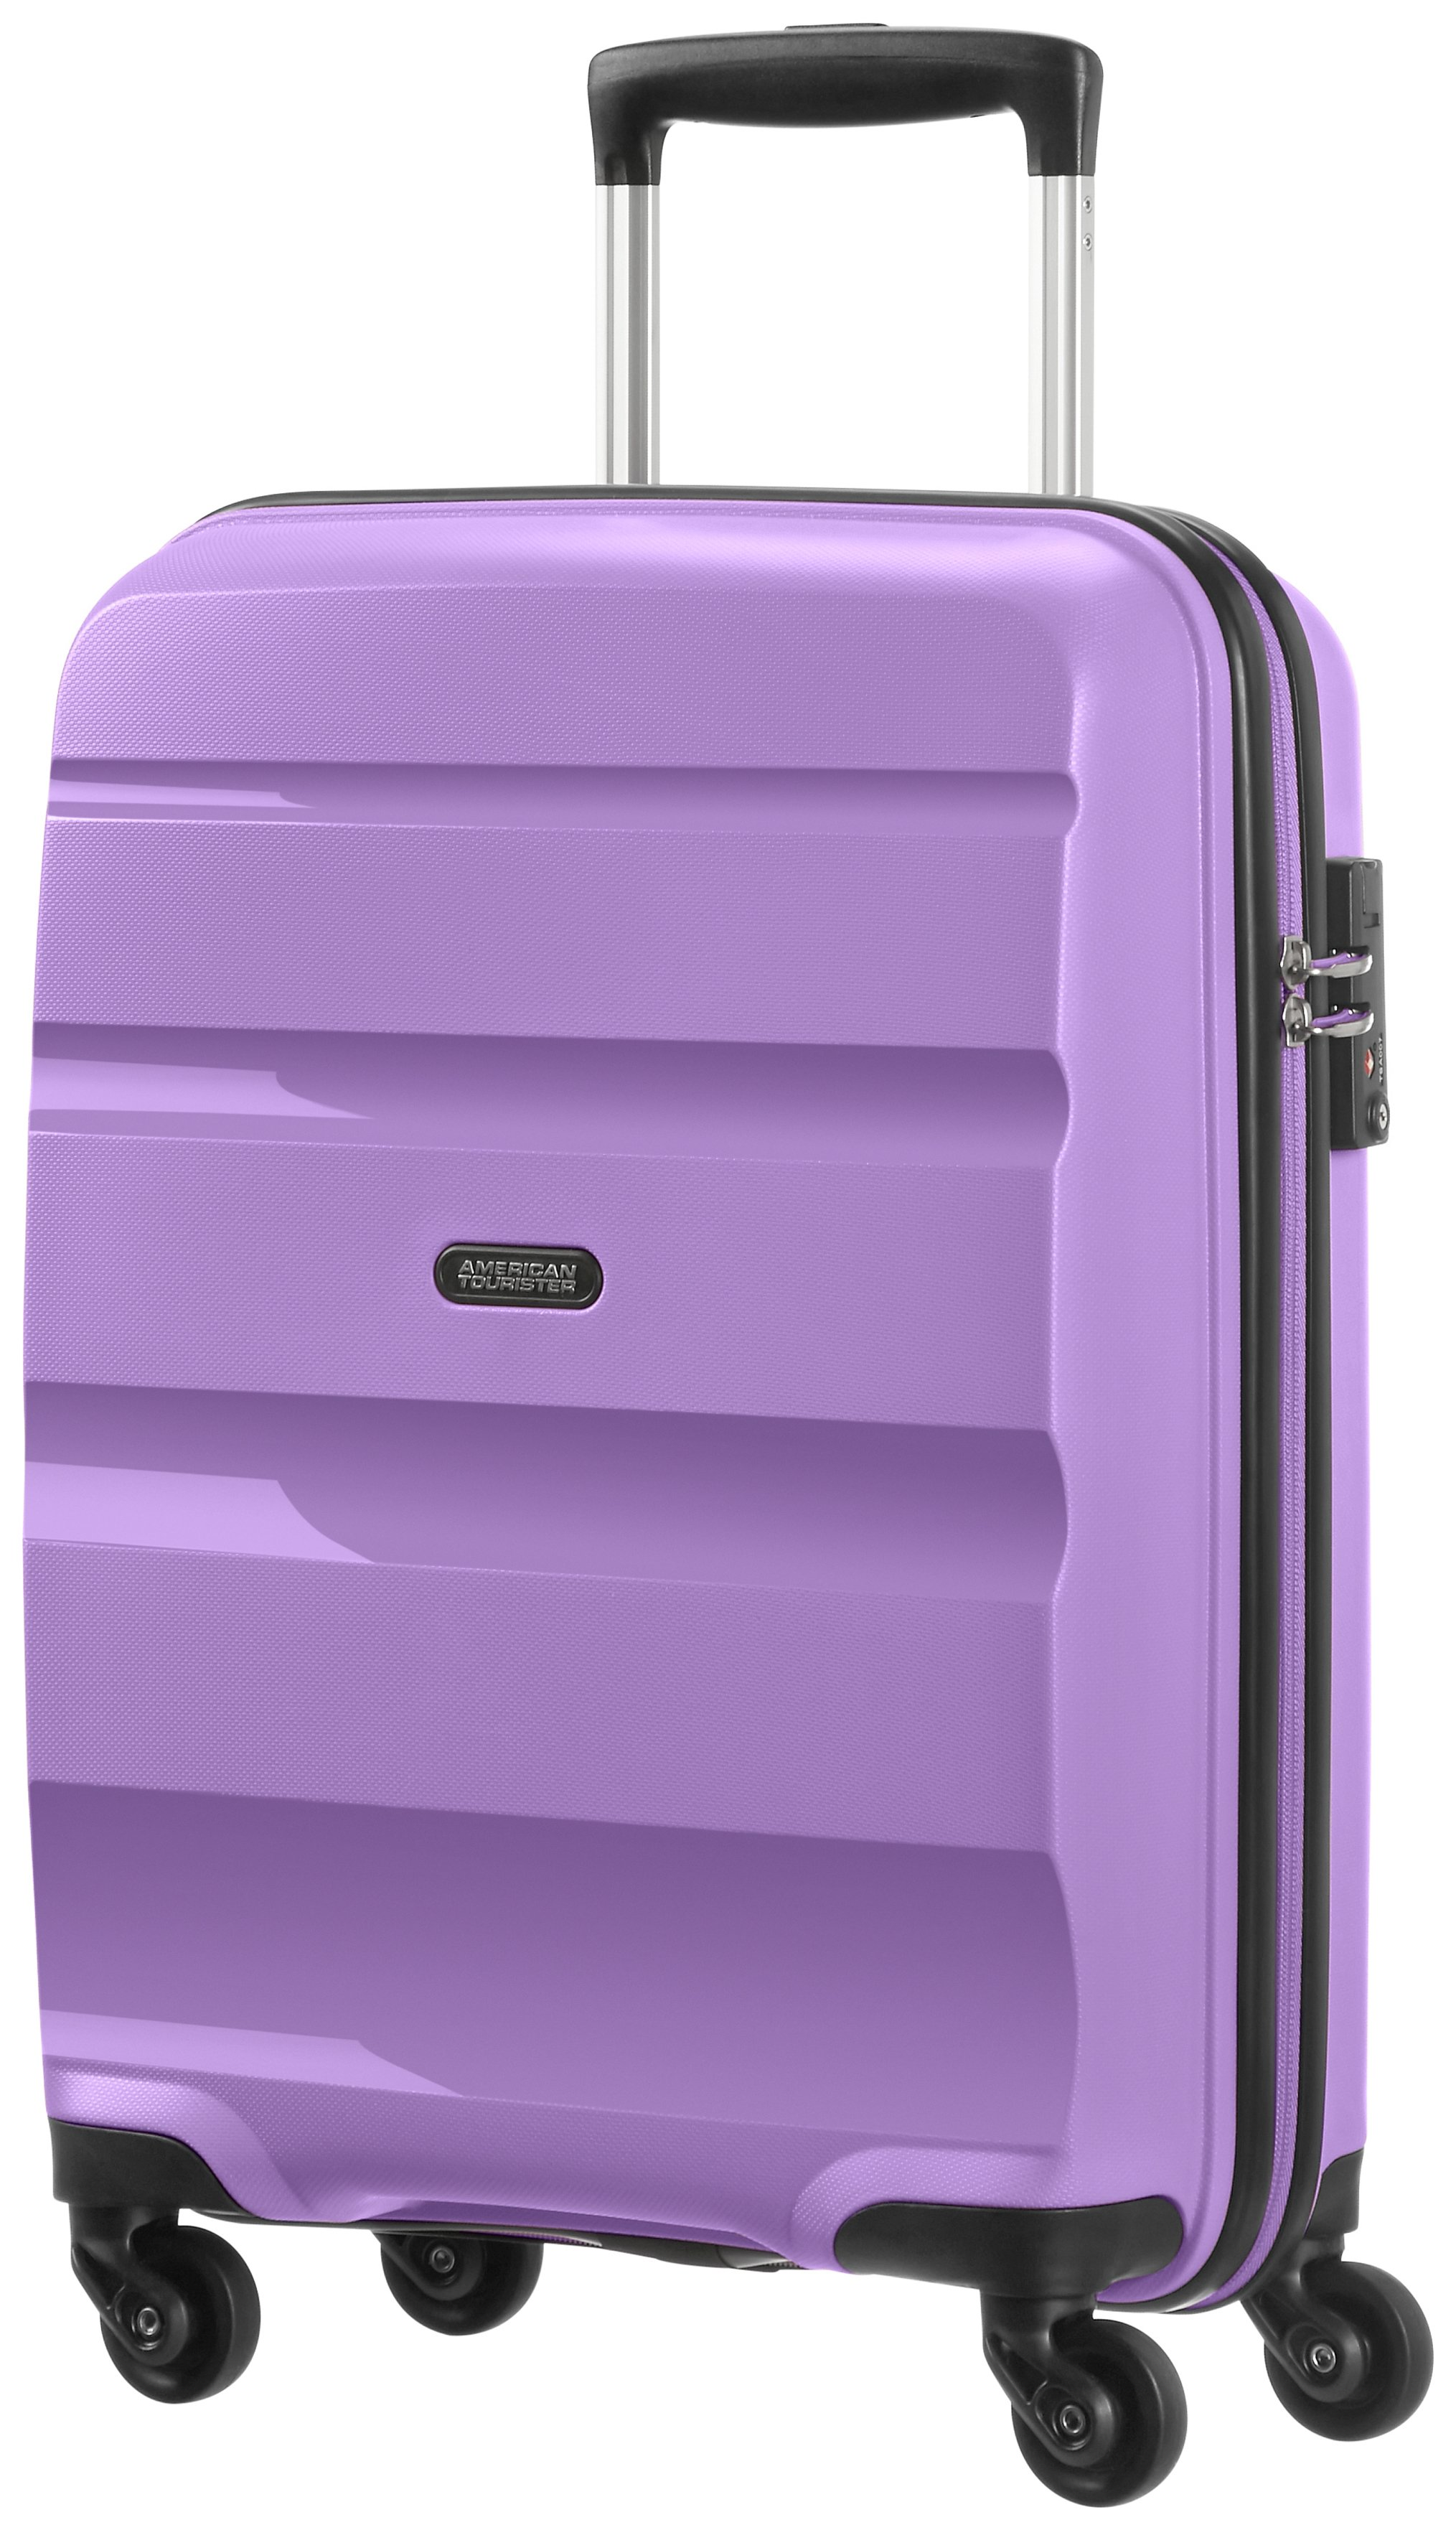 Image of American Tourister Bon Air 91 litre 4 Wheel Suitcase - Lilac